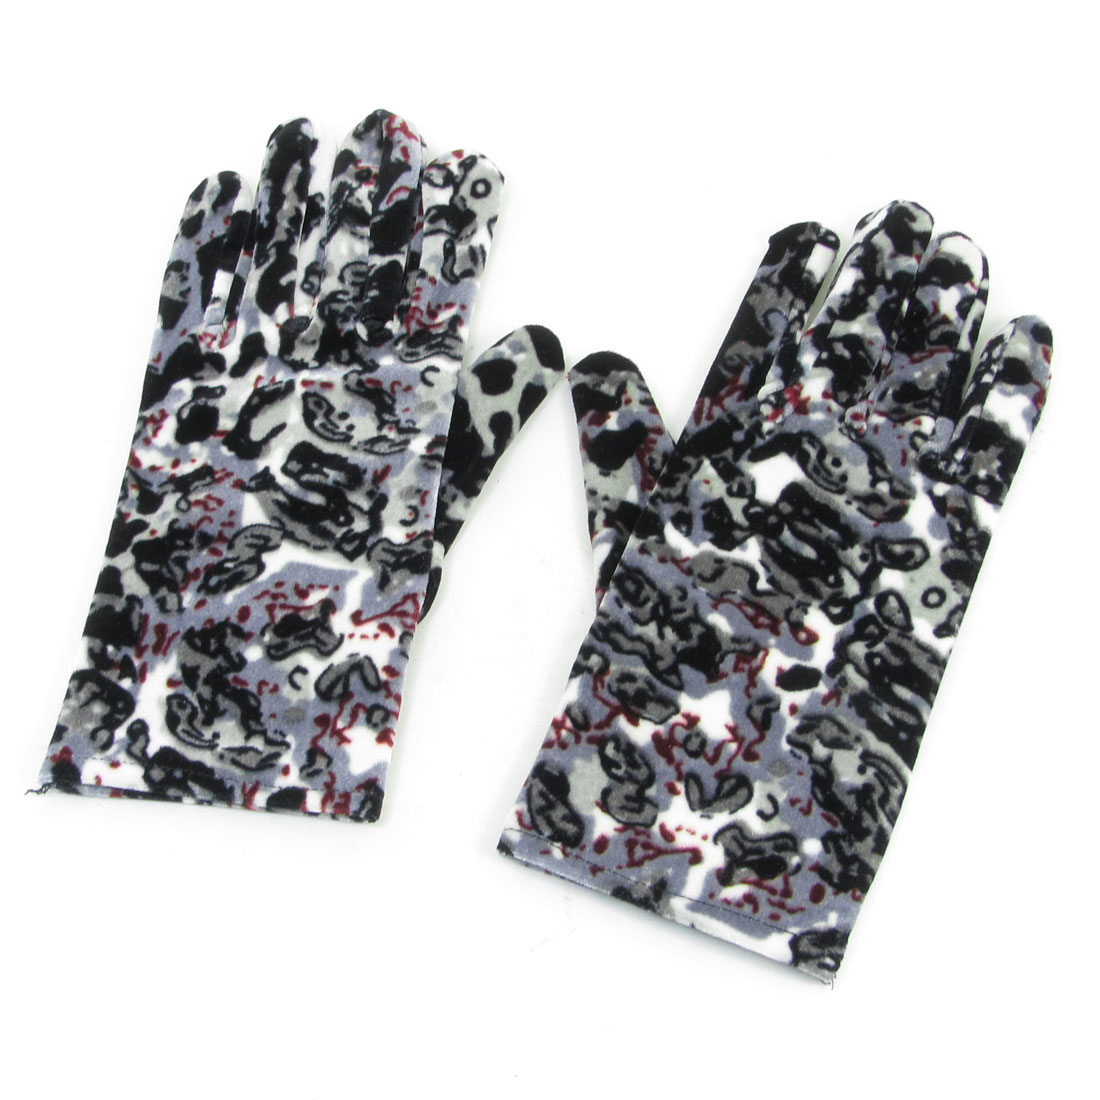 Ladies Fishes Dogs Pattern Retro Style Winter Warm Gloves Black Pair